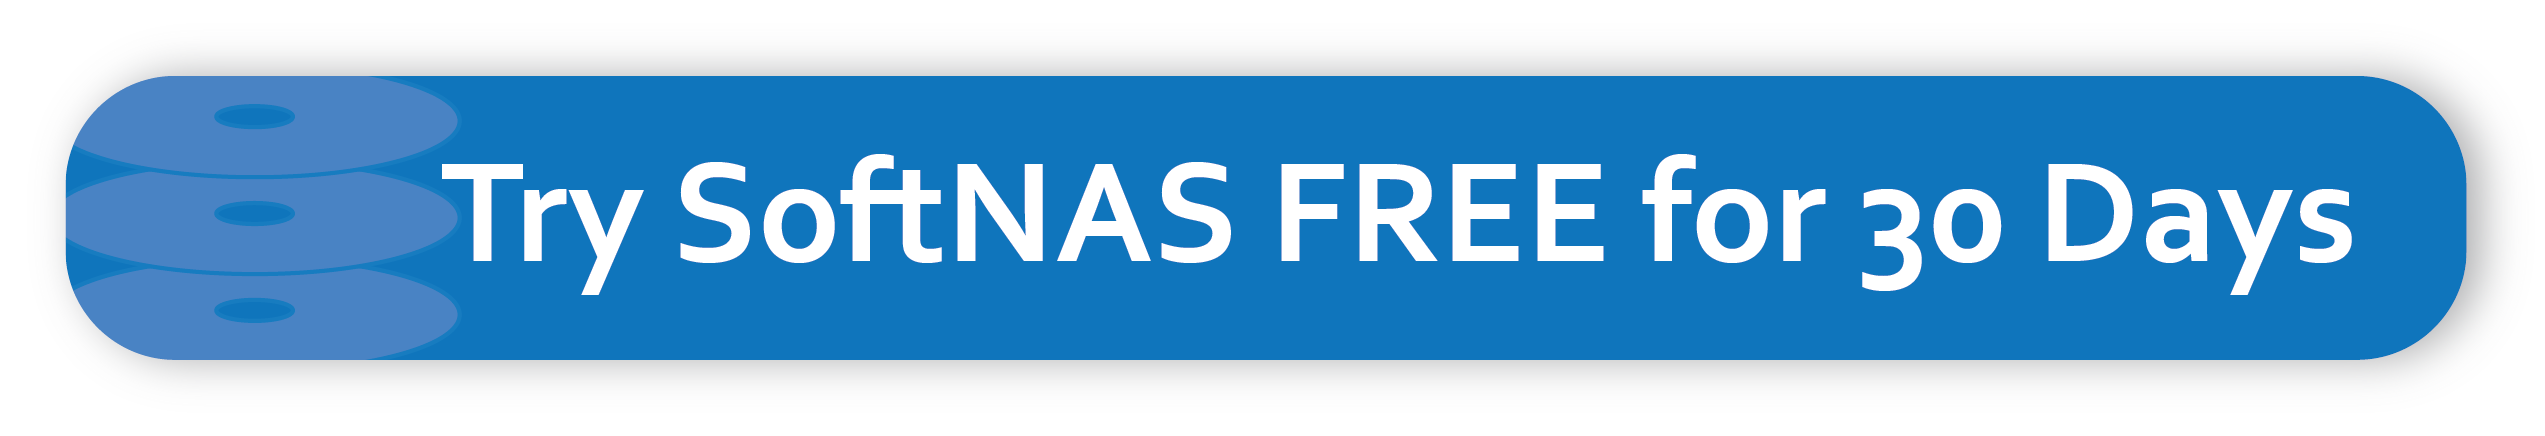 softnas cloud nas free trial